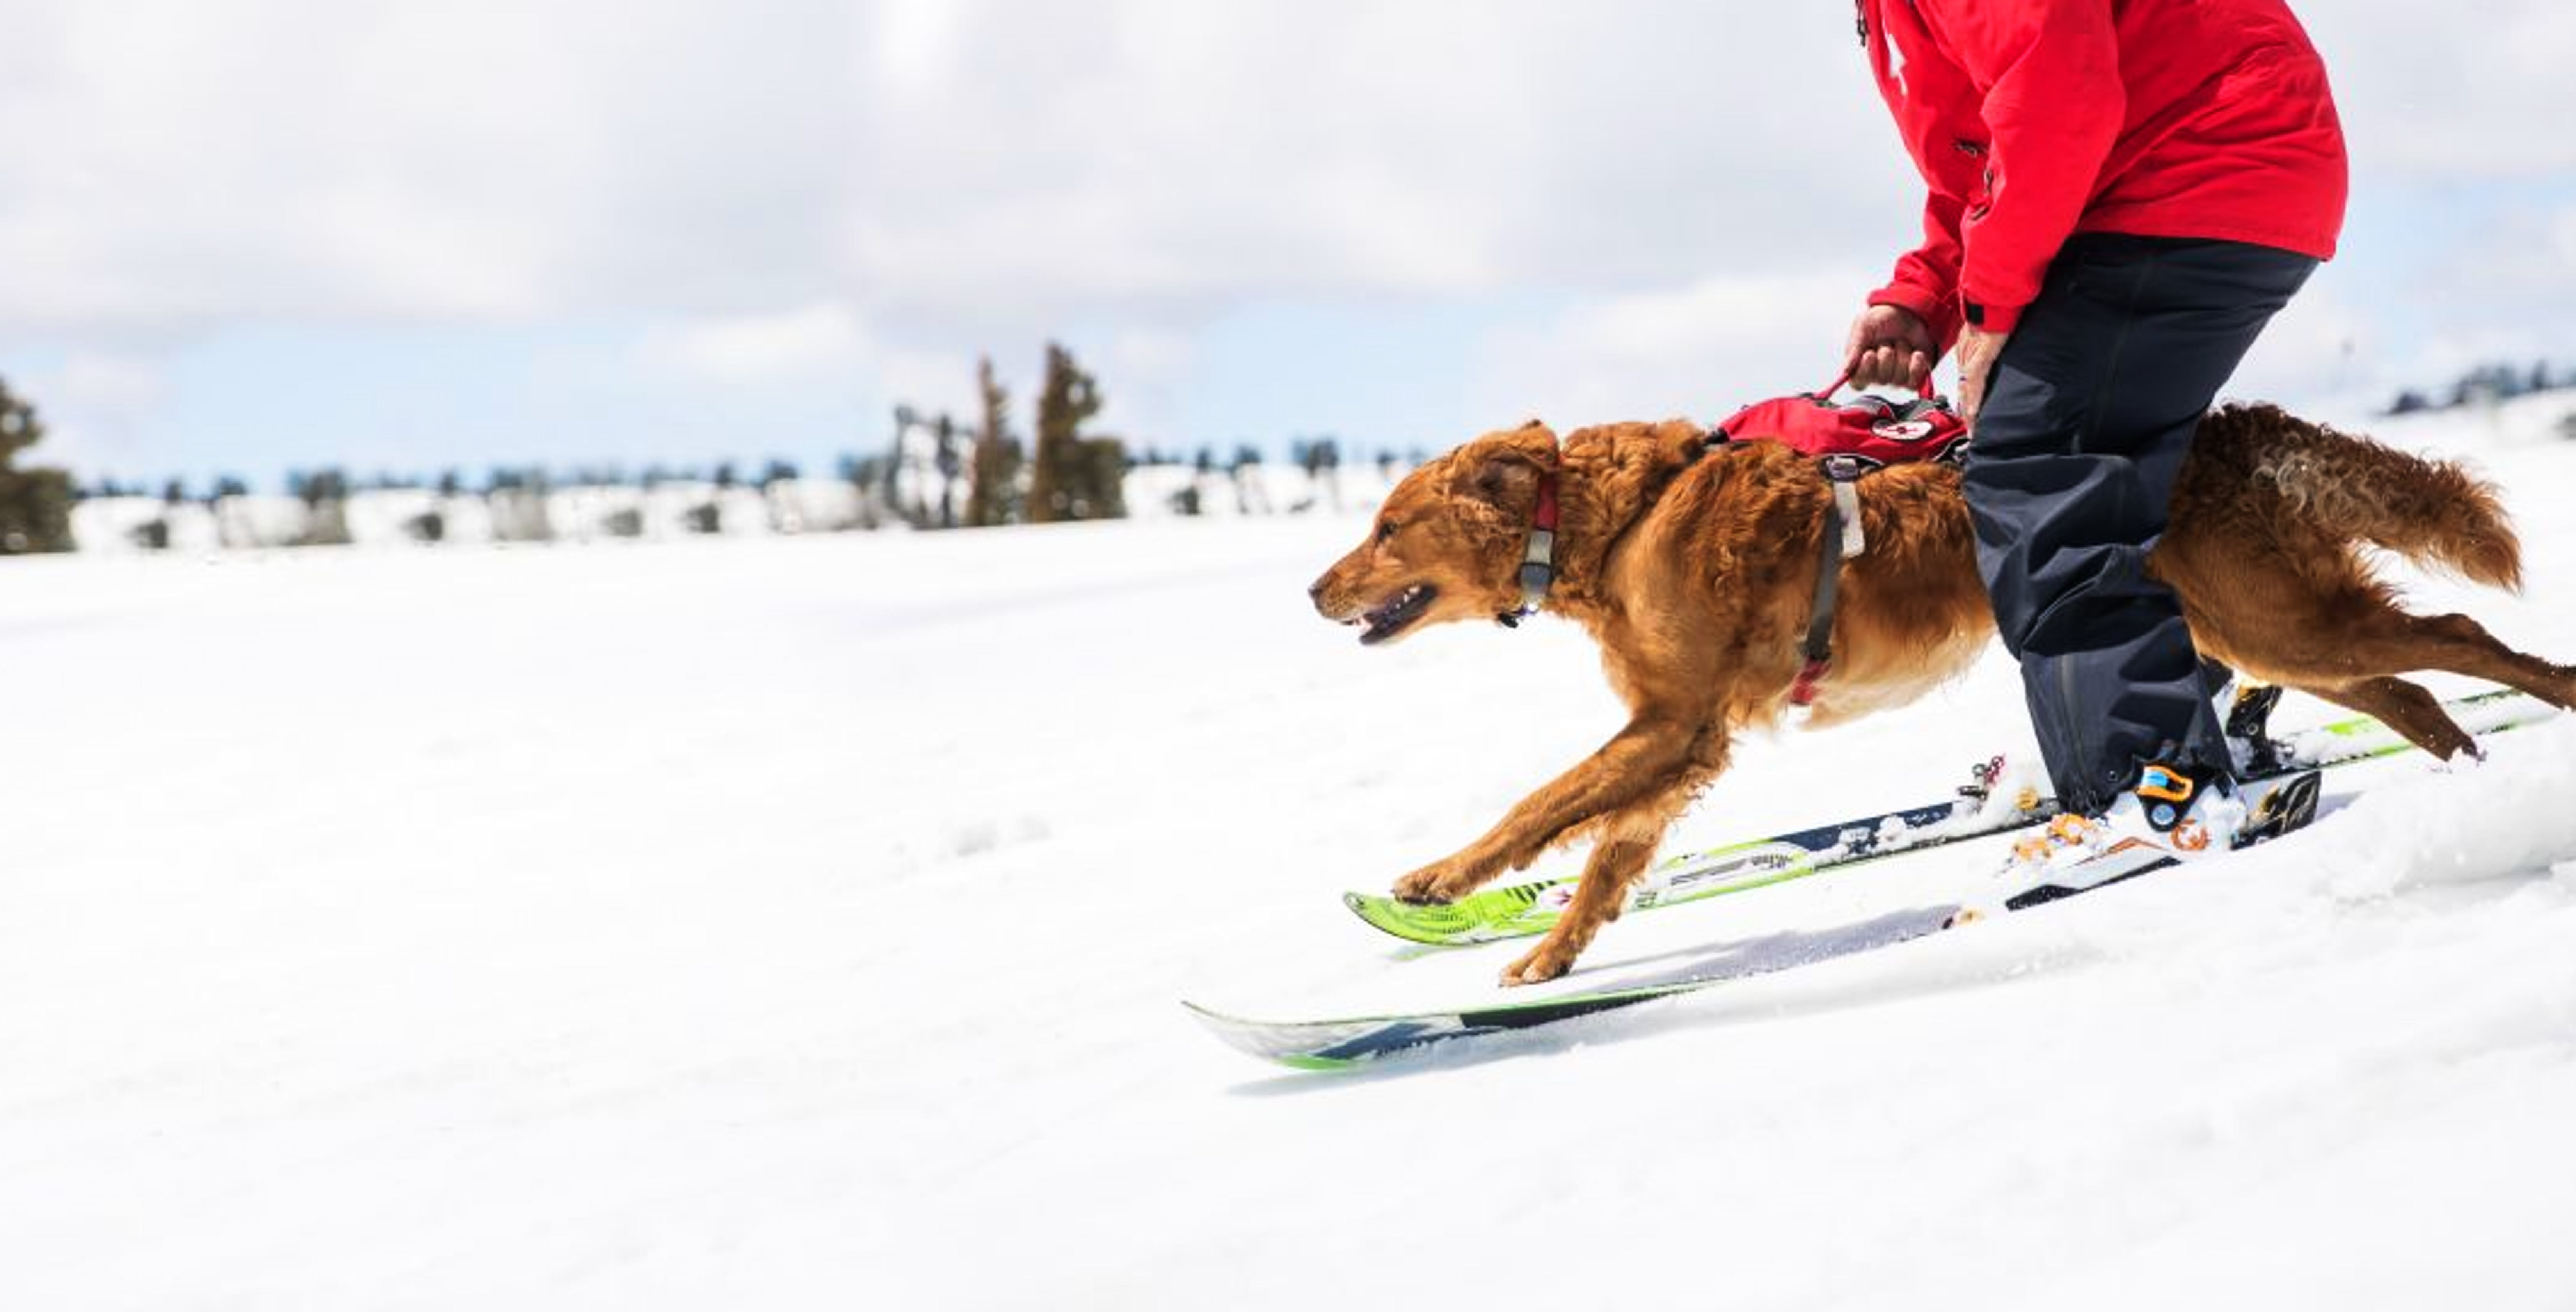 Mountain rescue dog with handler running down ski slope